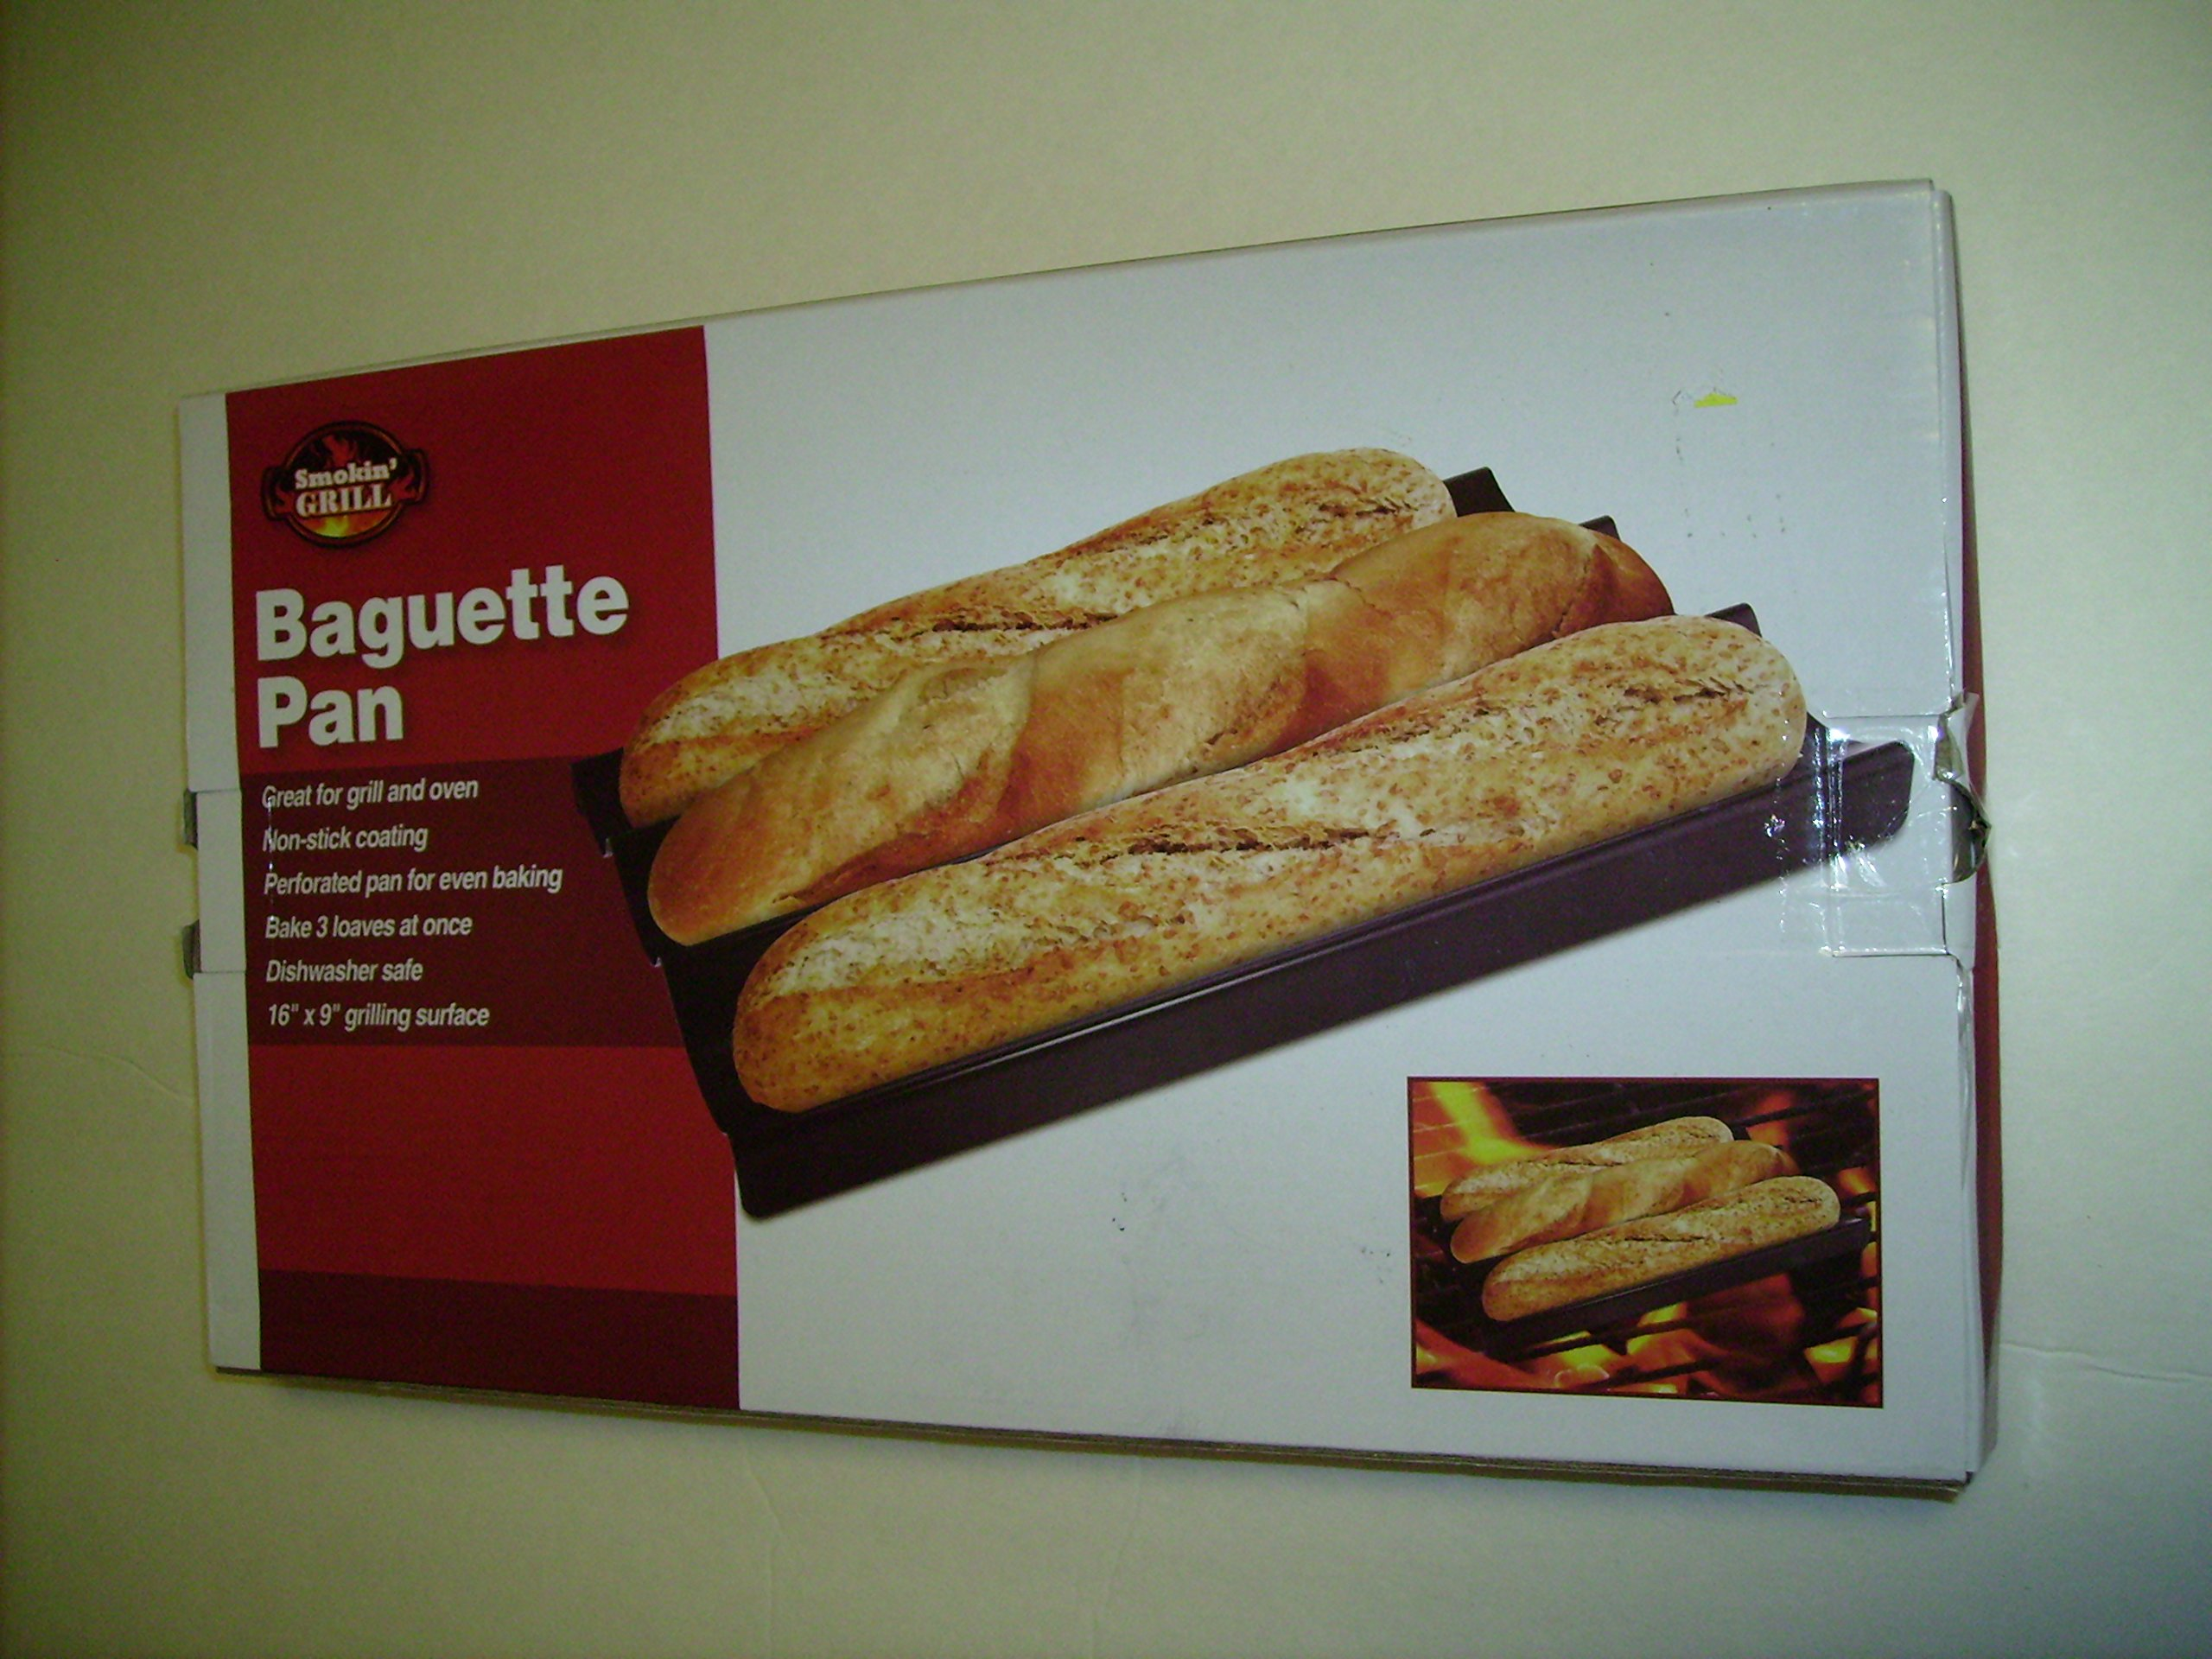 Smokin Grill 3-LOAF BAGUETTE PAN -NON-STICK For Every Day Usage by Smokin Grill